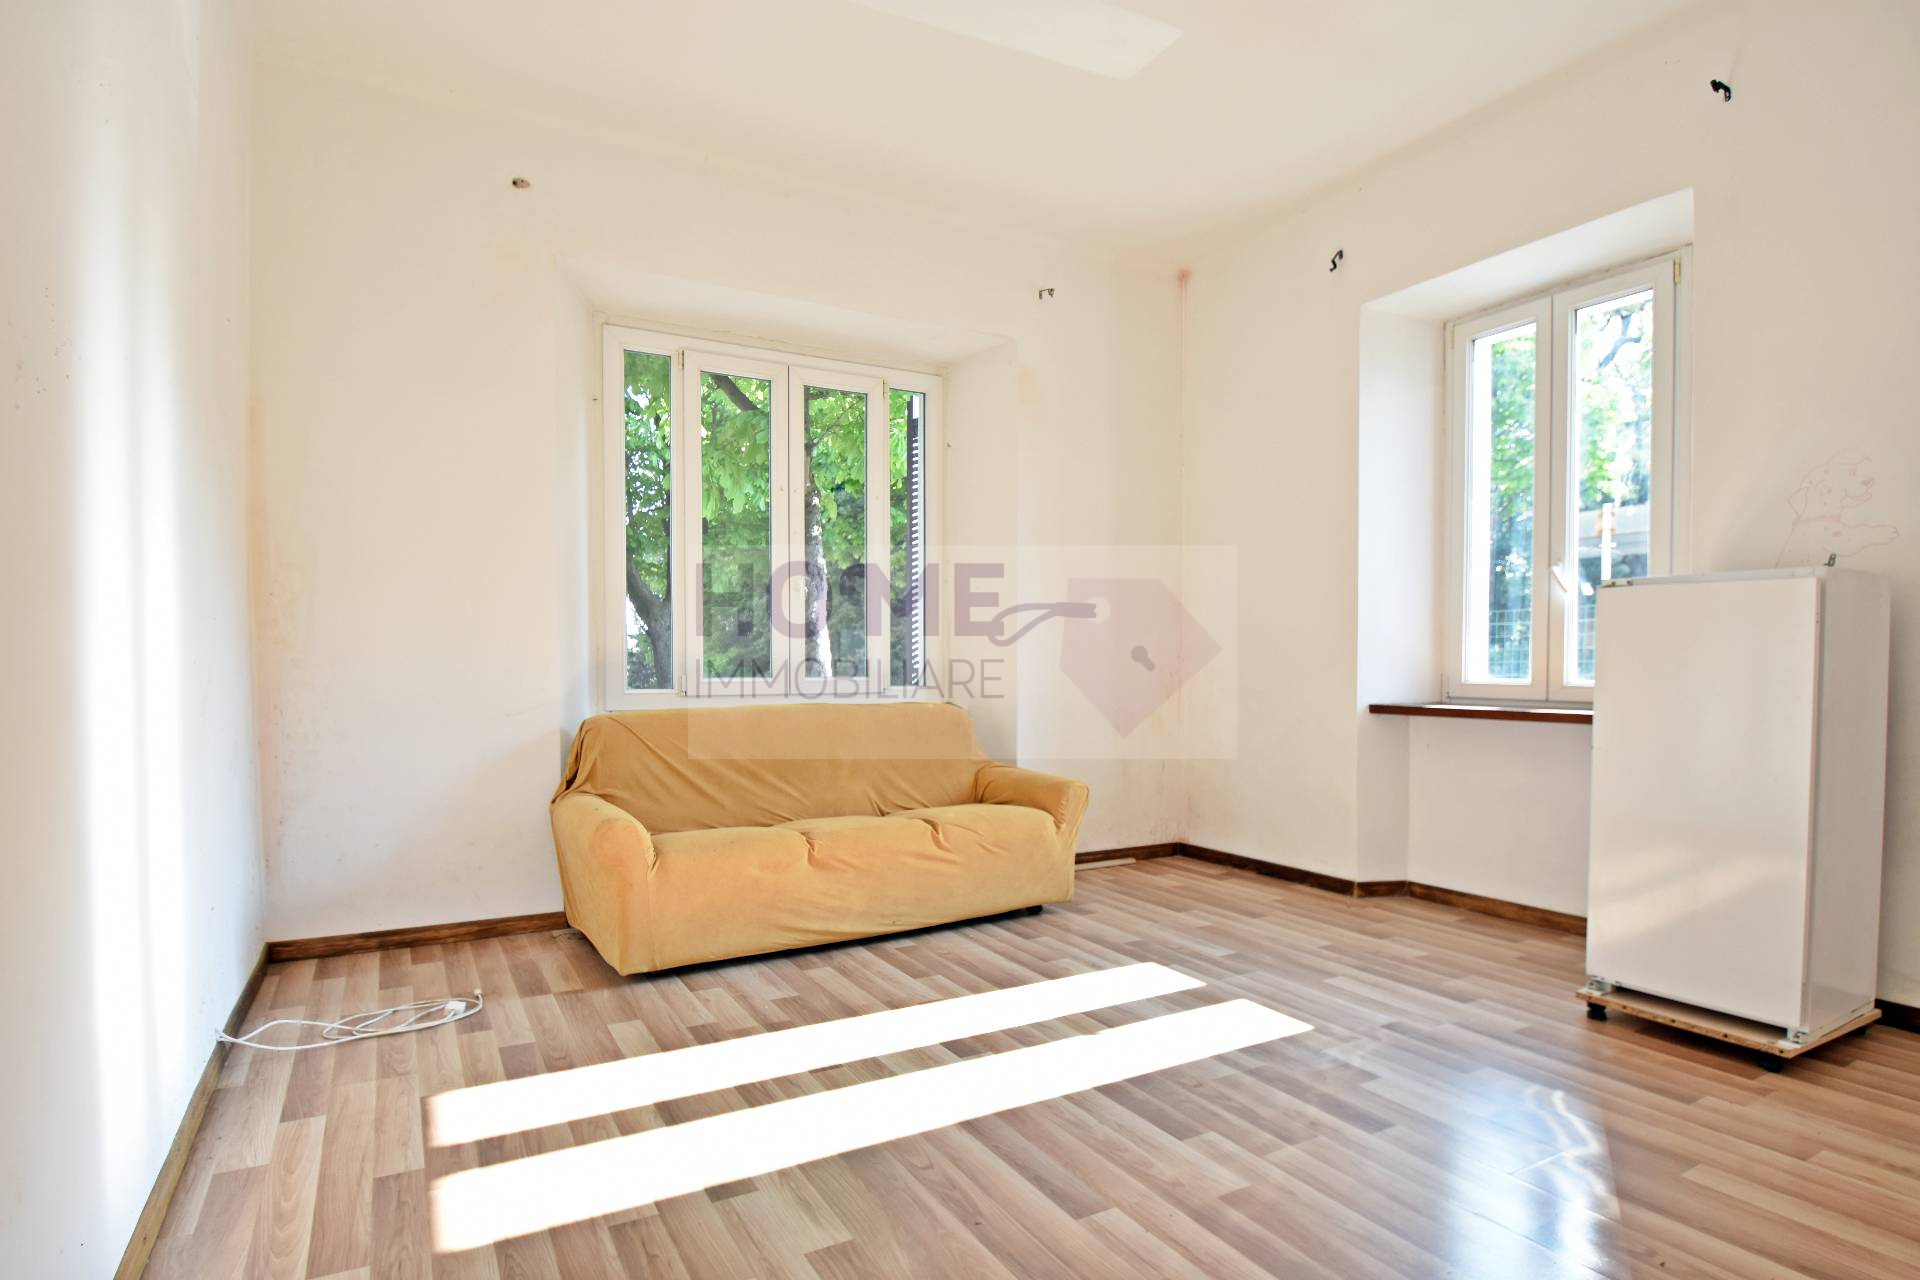 macerata vendita quart: zona colleverde home-immobiliare-srl